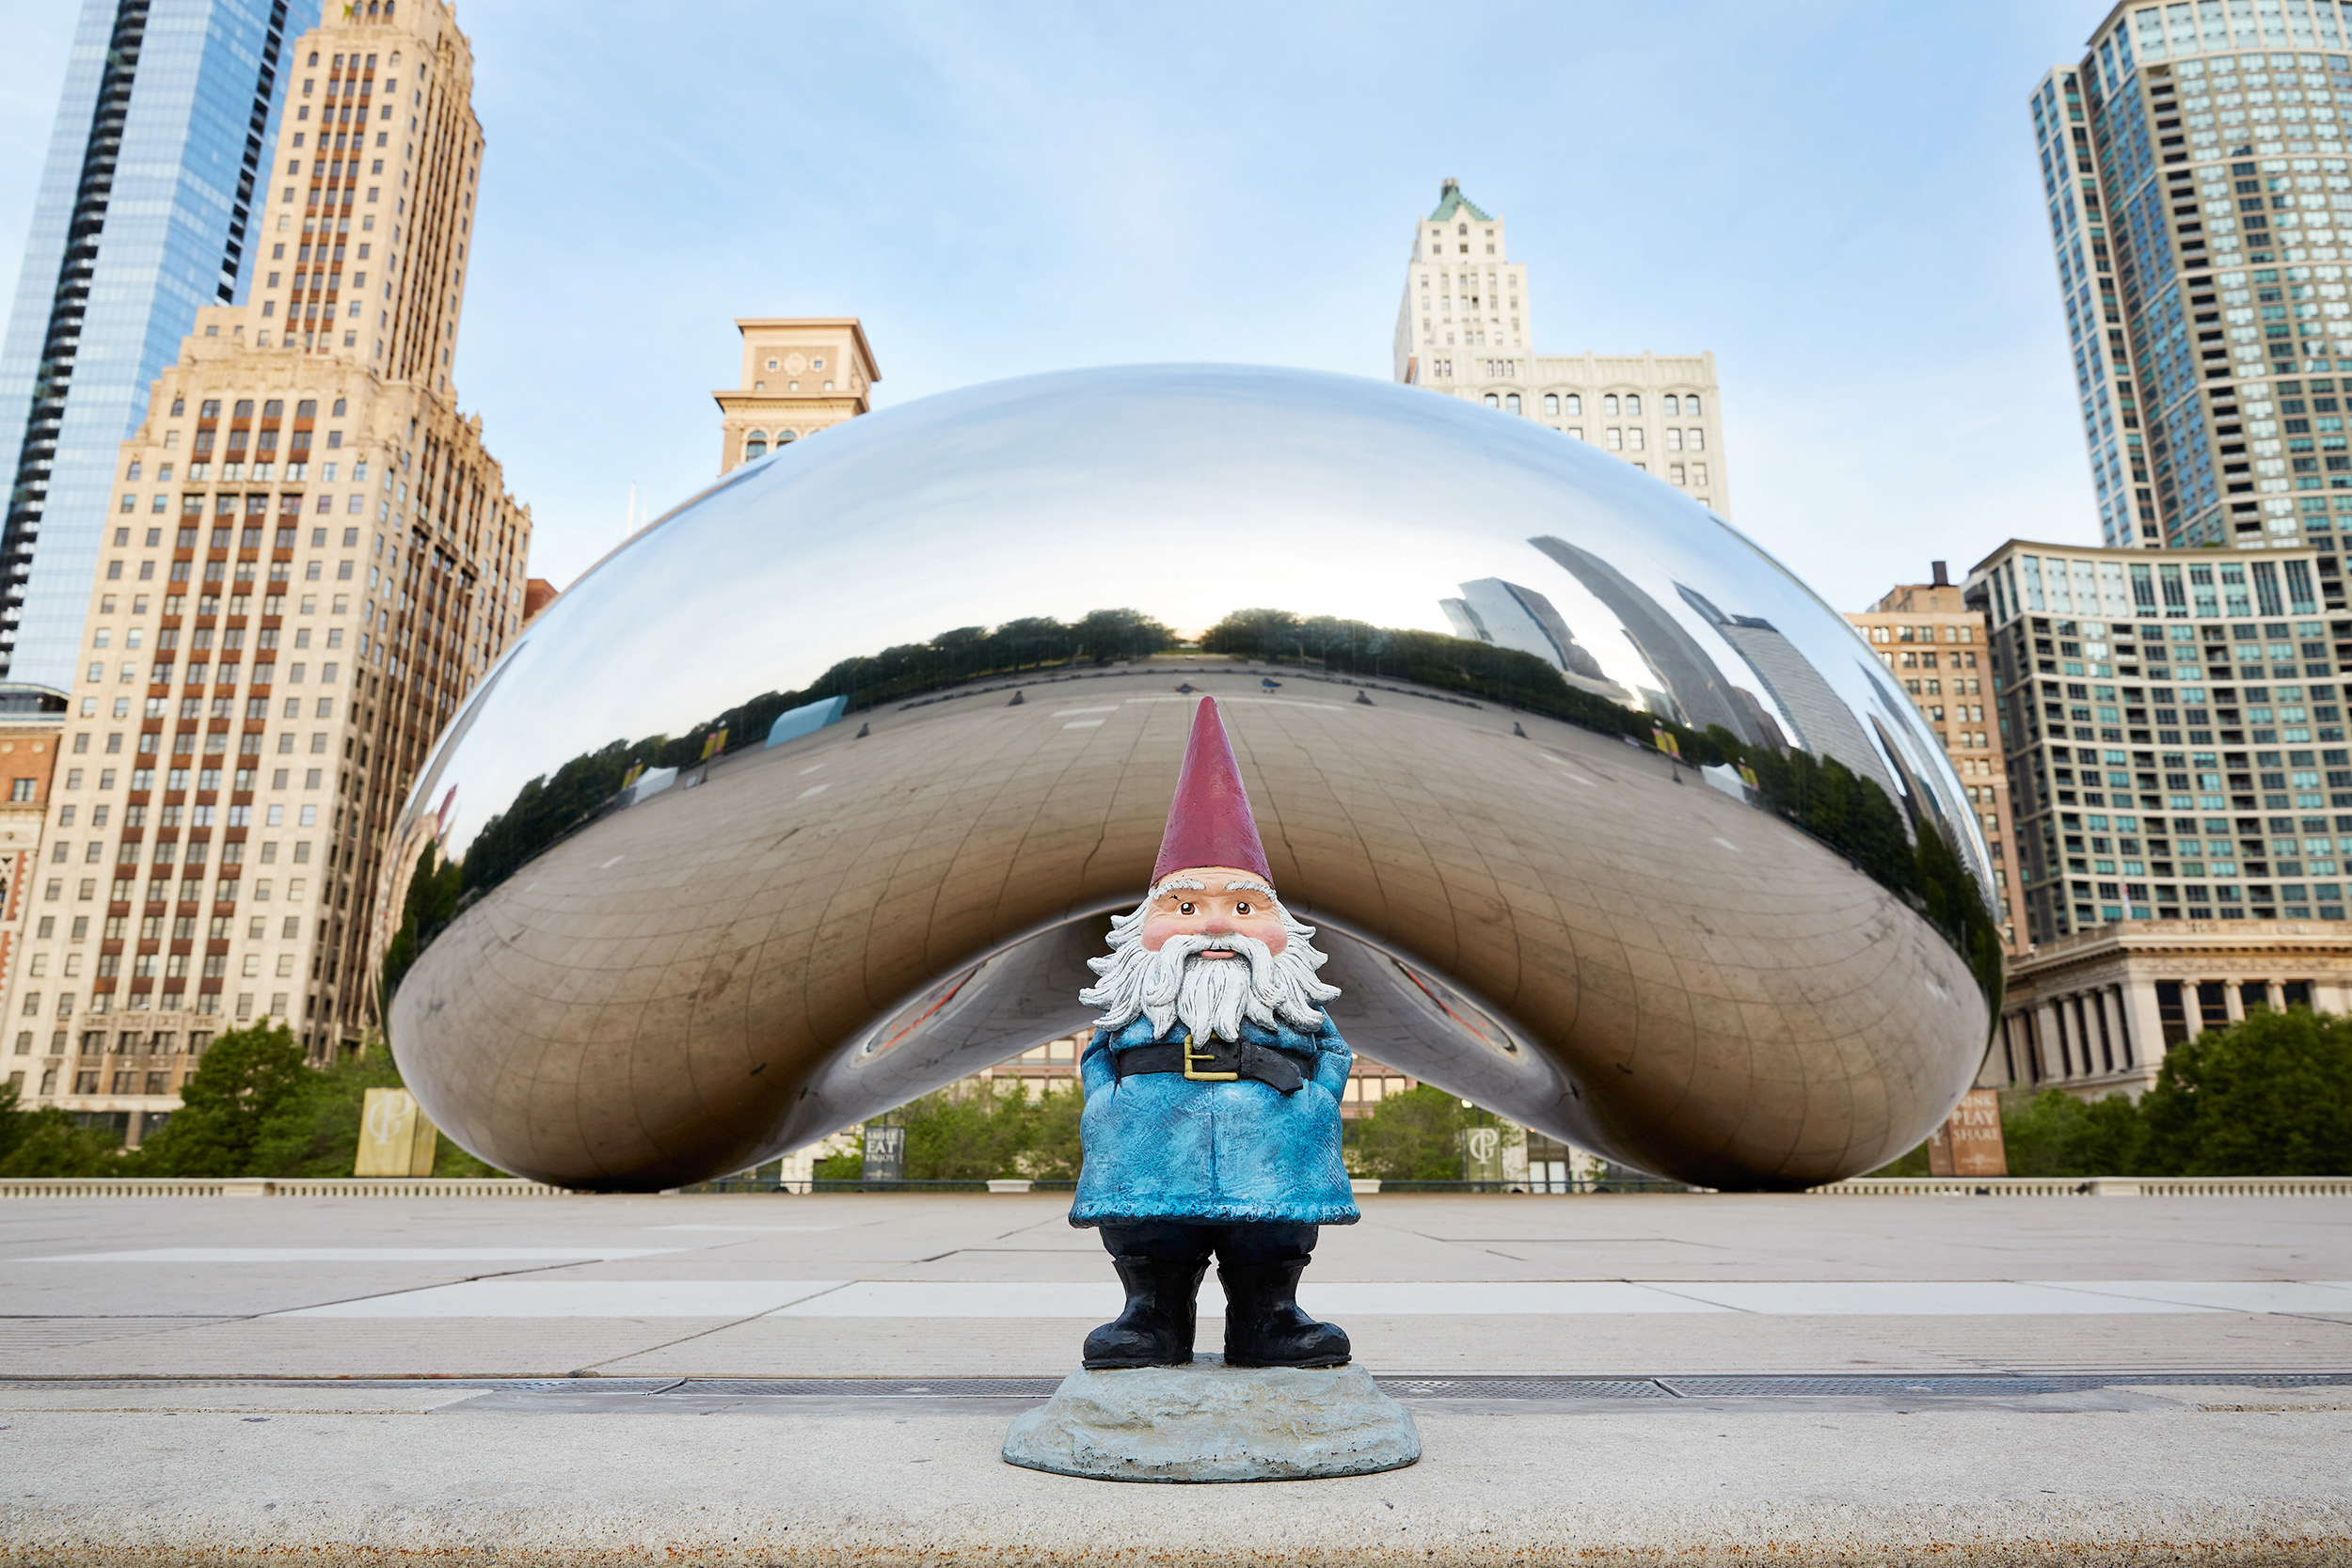 travelocity_chicago_1007.jpg